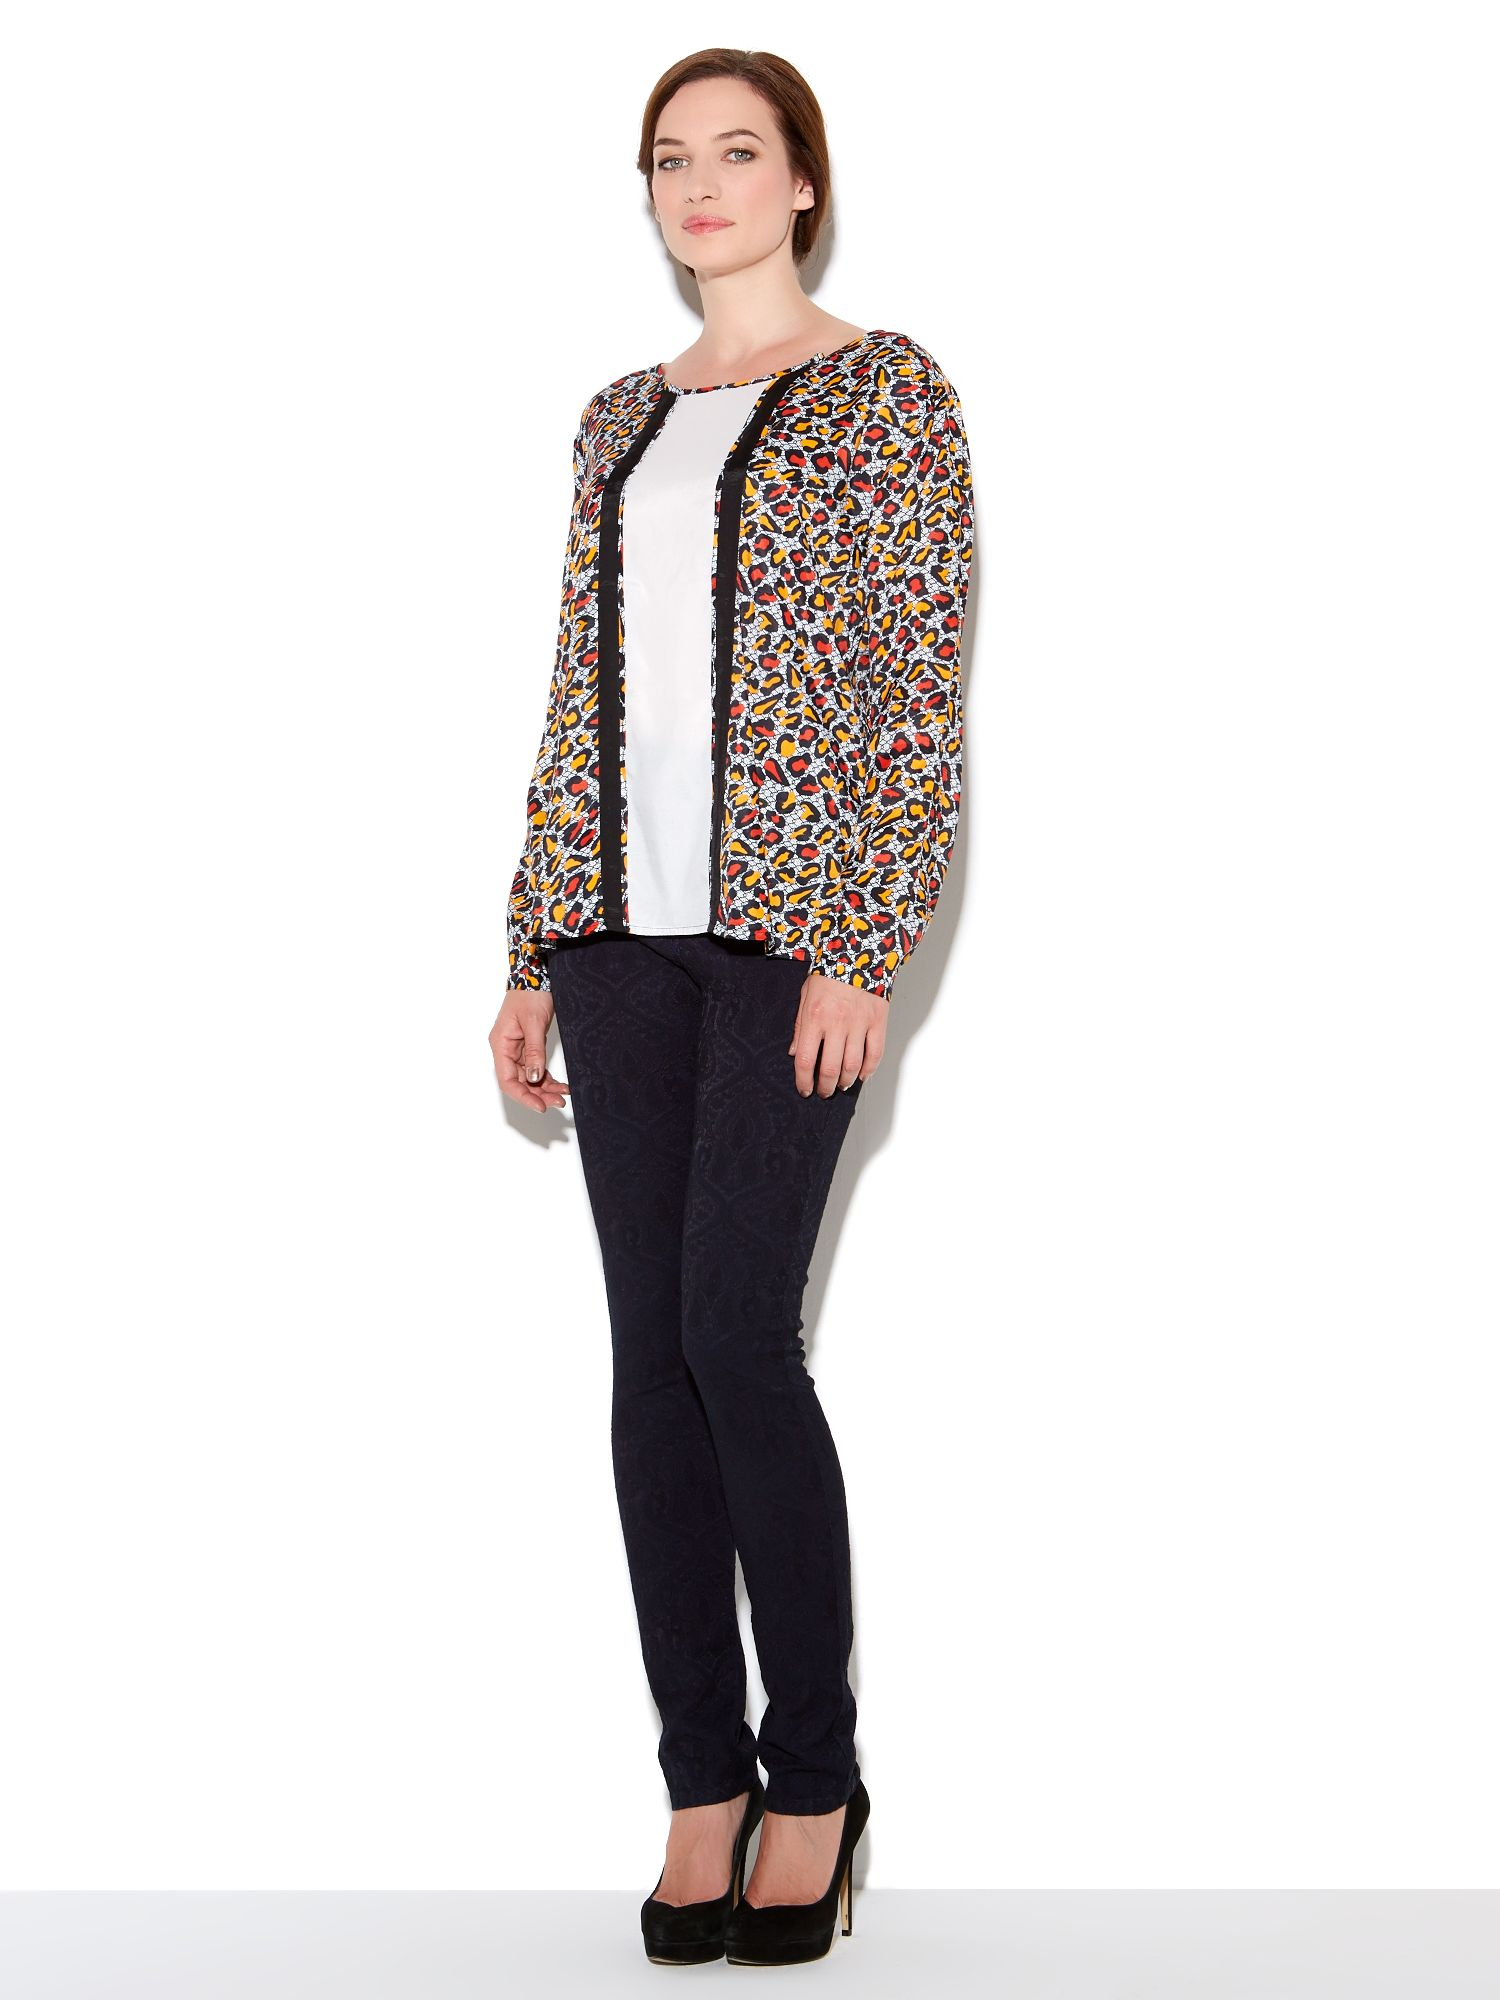 Panelled animal print shirt